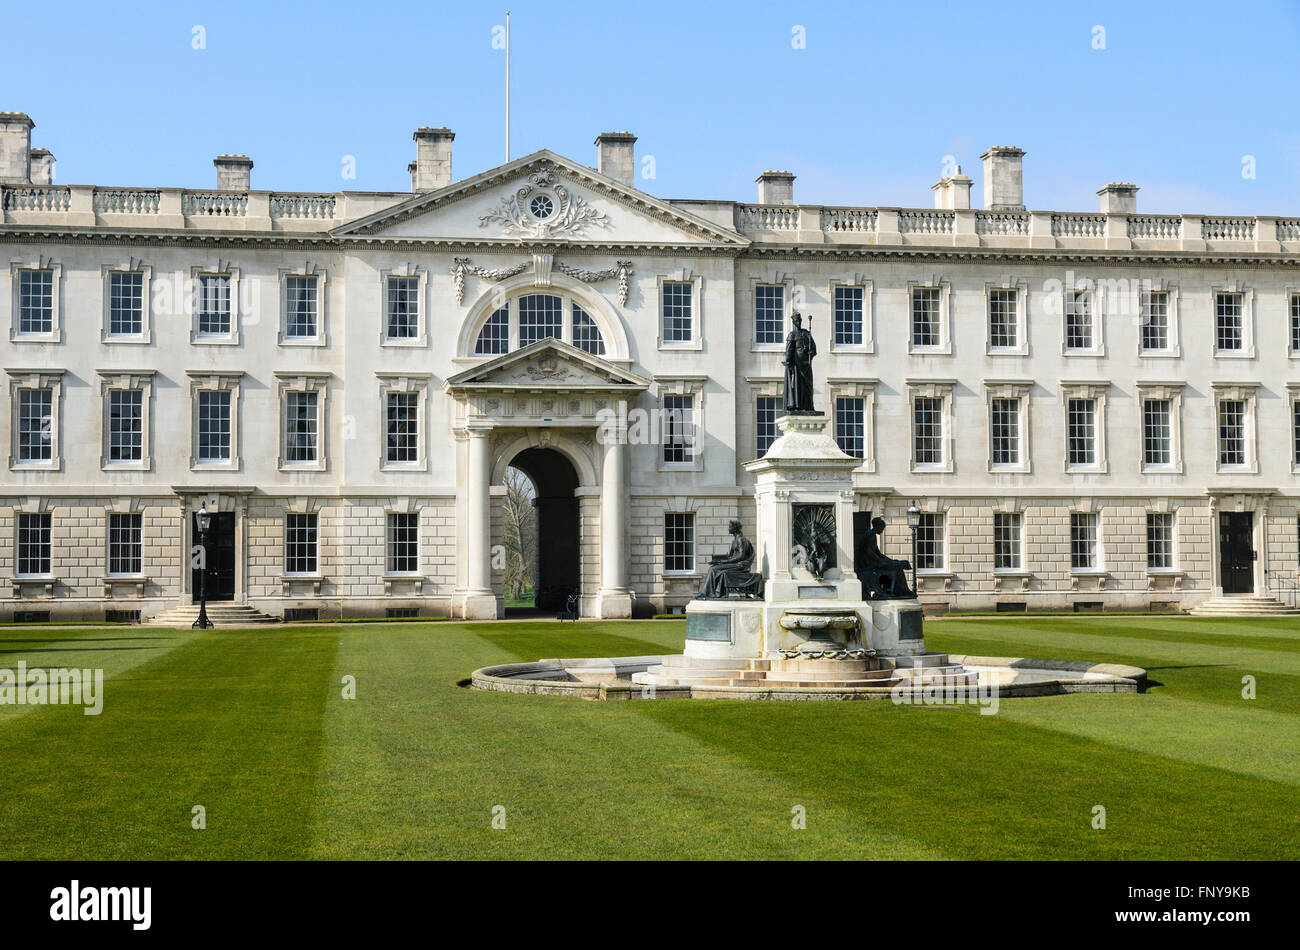 Kings College, University of Cambridge, Cambridge, England, UK. Stock Photo